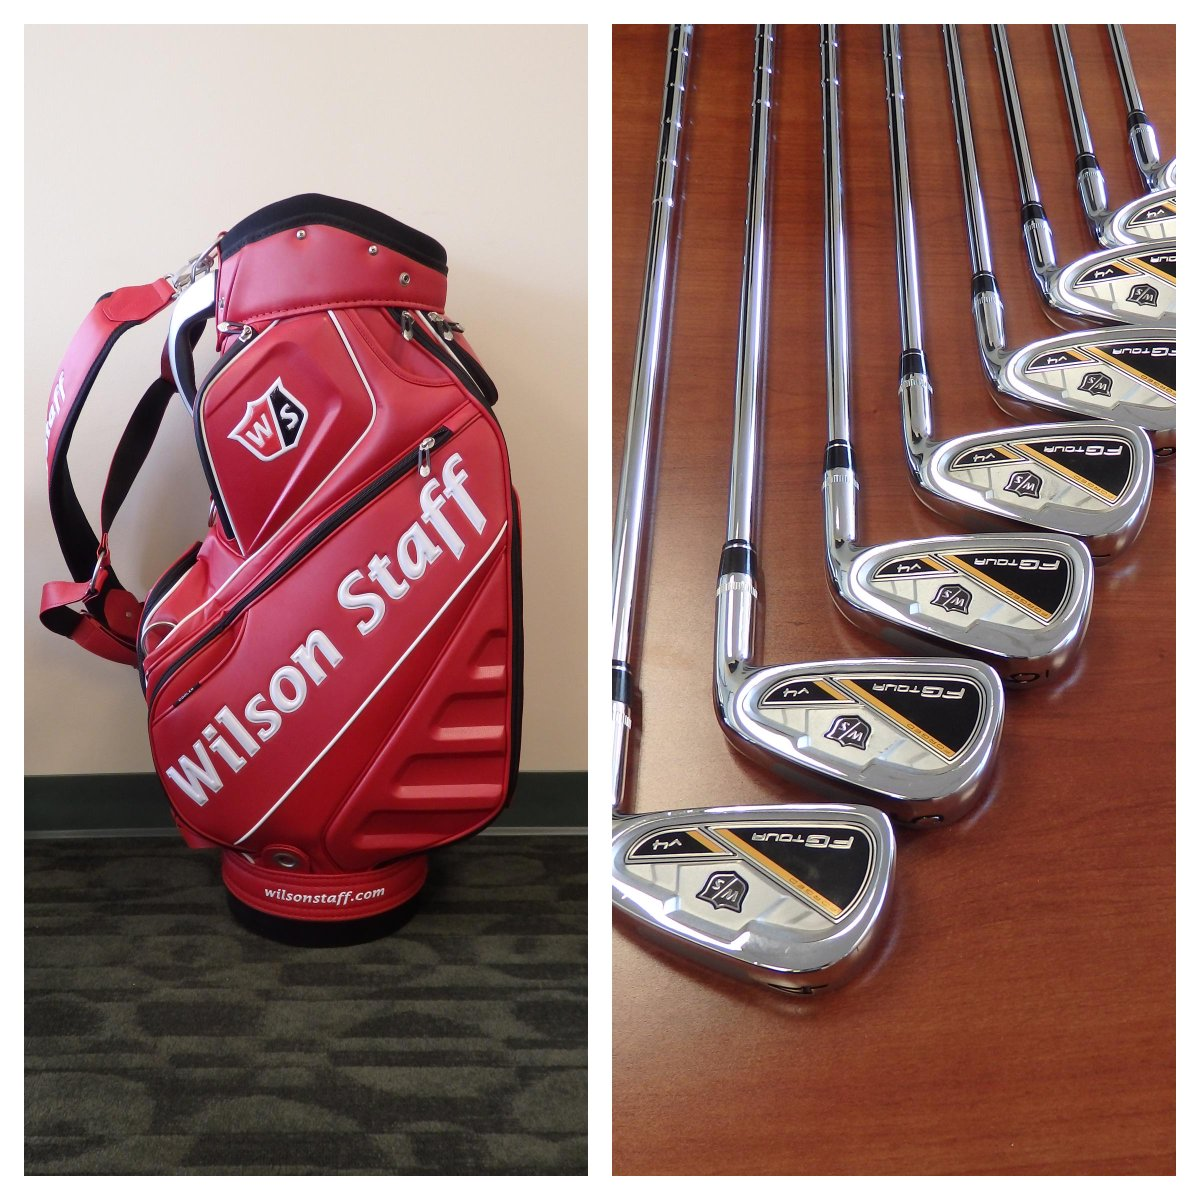 Thx to @WilsonGolf who gave us irons + a bag on Media Day with @Streels54 for 1 lucky fan. RT for a chance to win! http://t.co/3FiSfnFqZ9